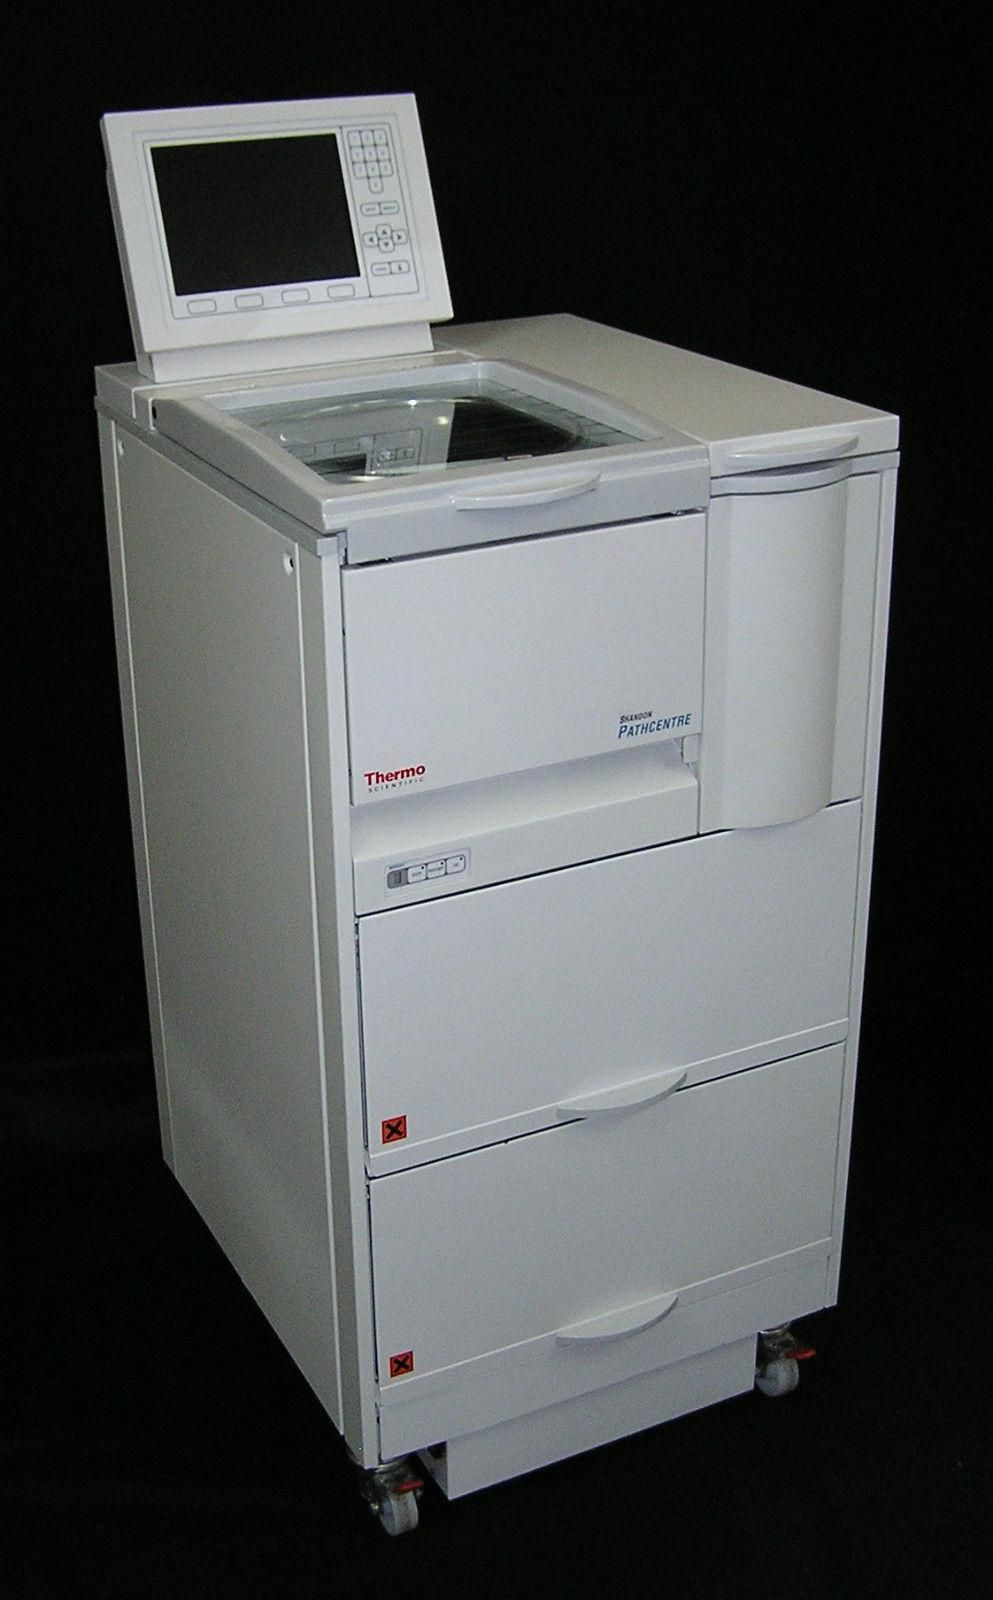 SHANDON PATHCENTRE TISSUE PROCESSOR - FULLY RECONDITIONED